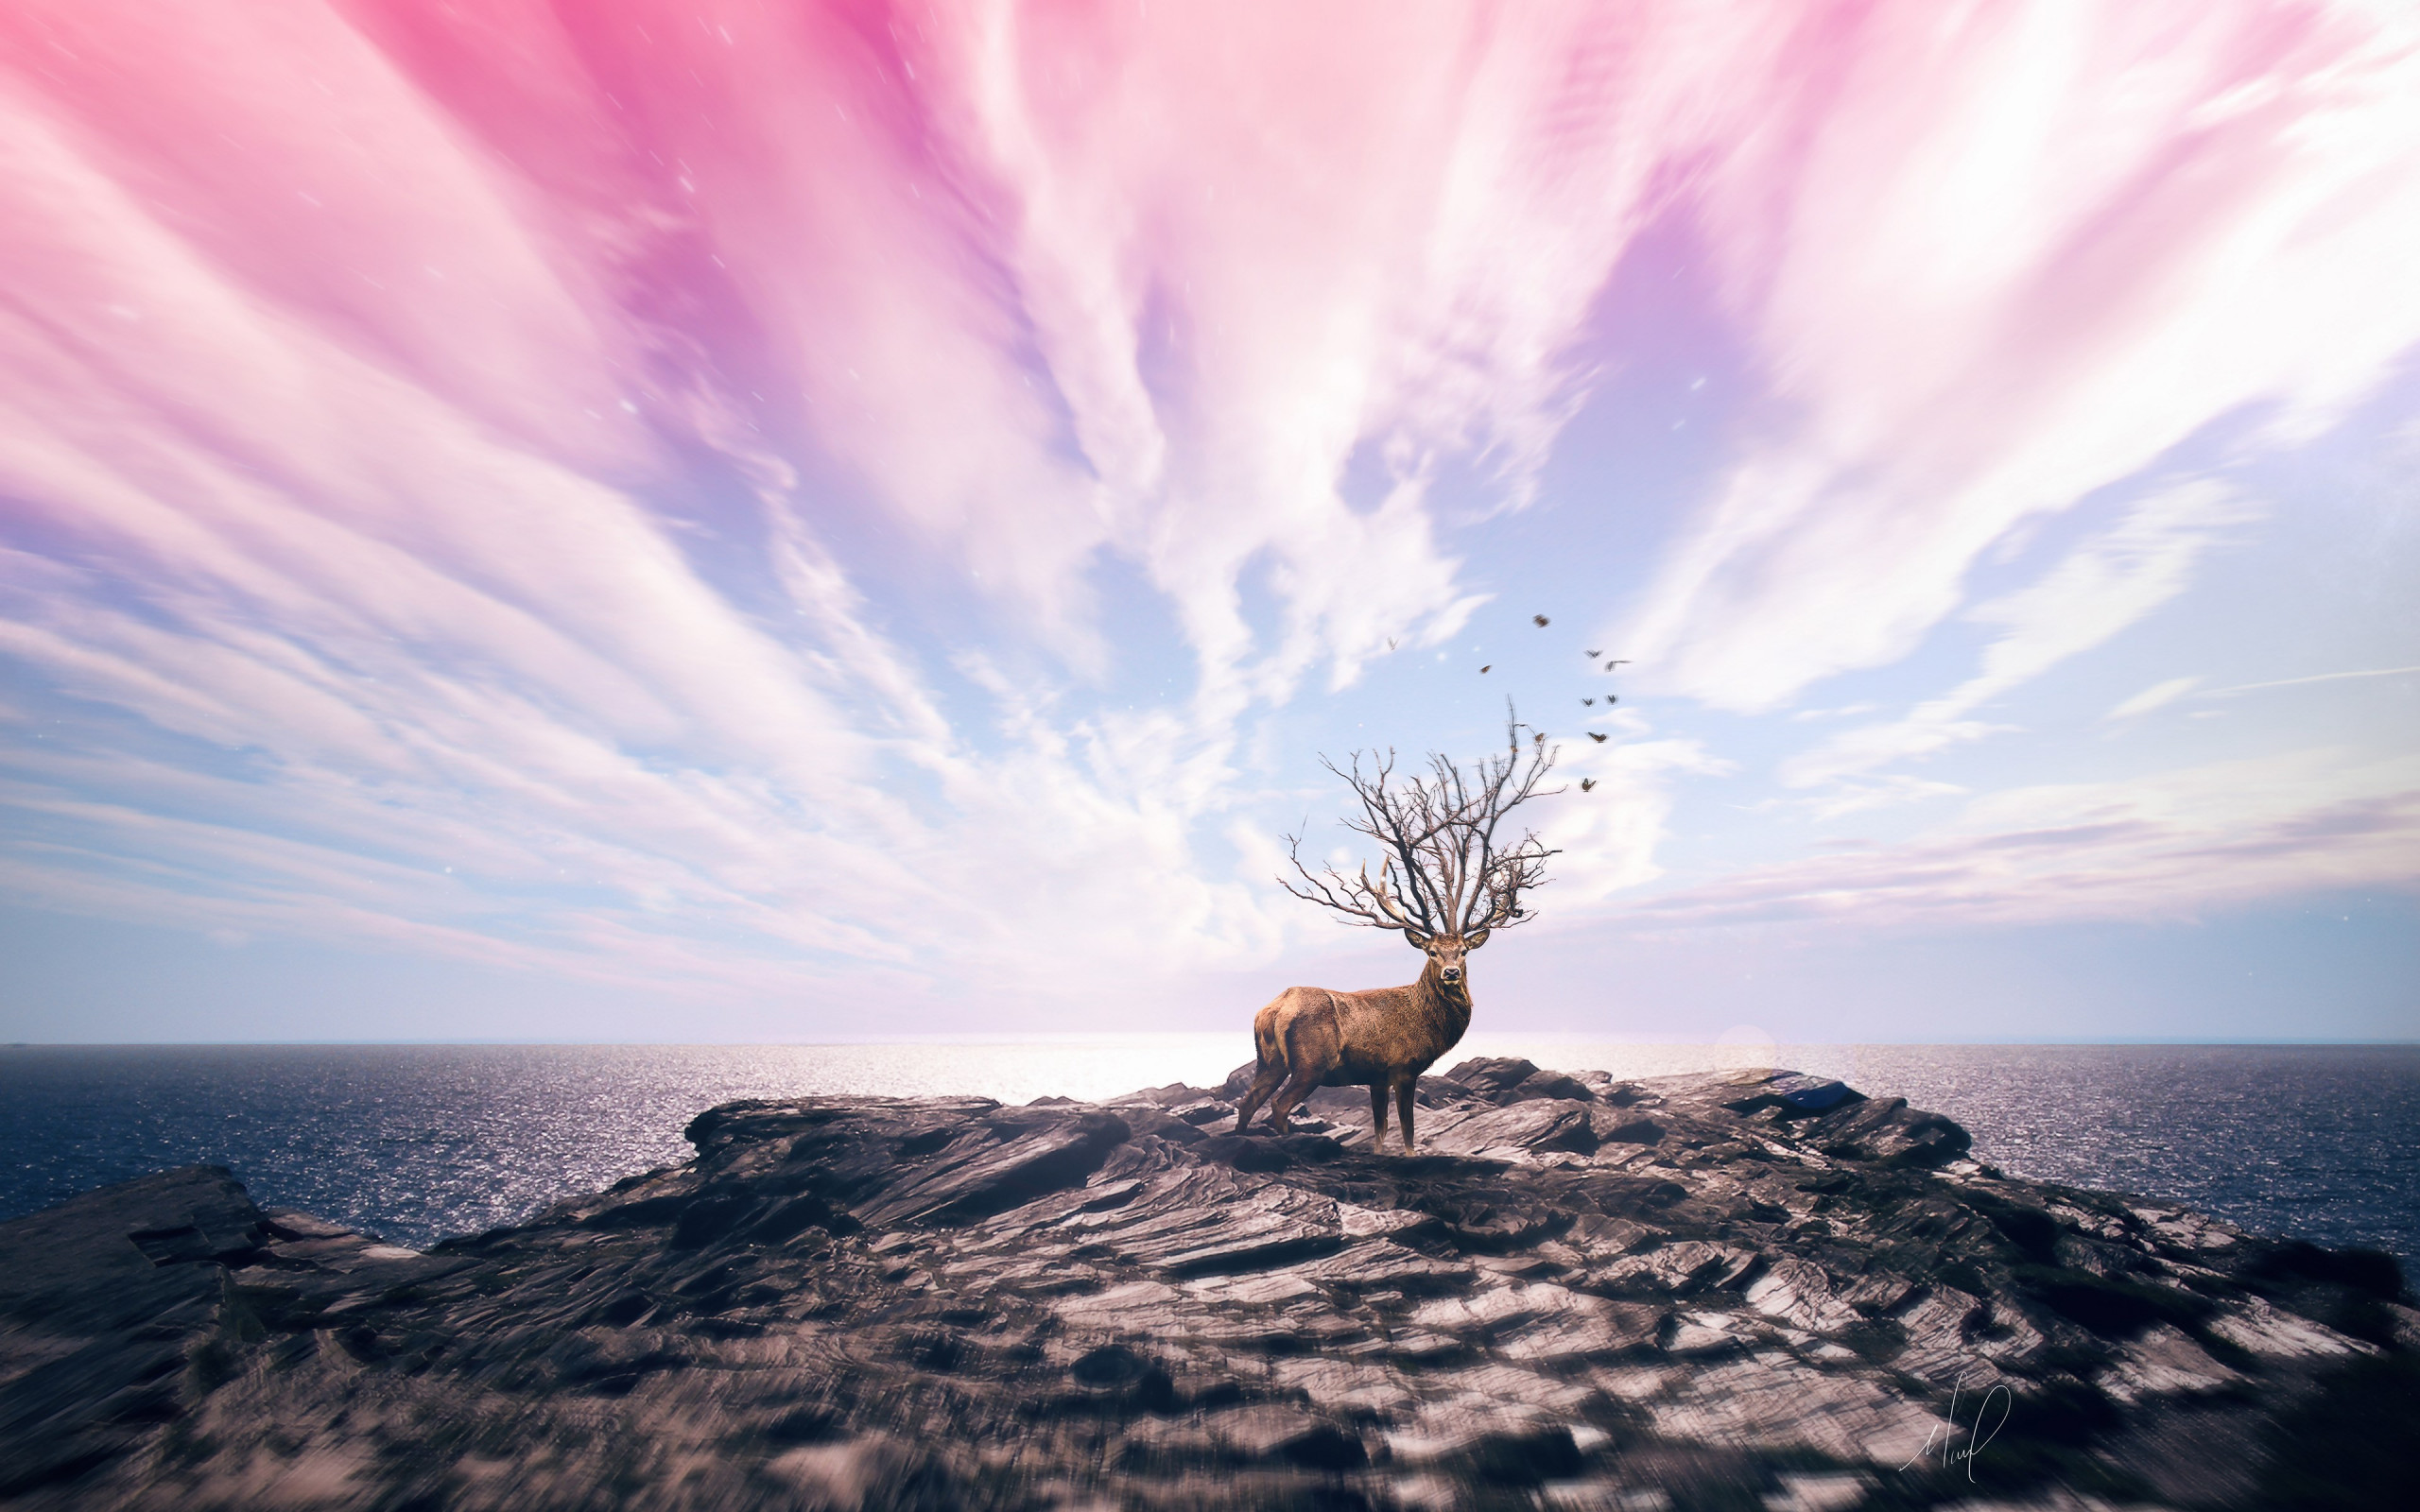 Digital art with deer wallpaper 2560x1600